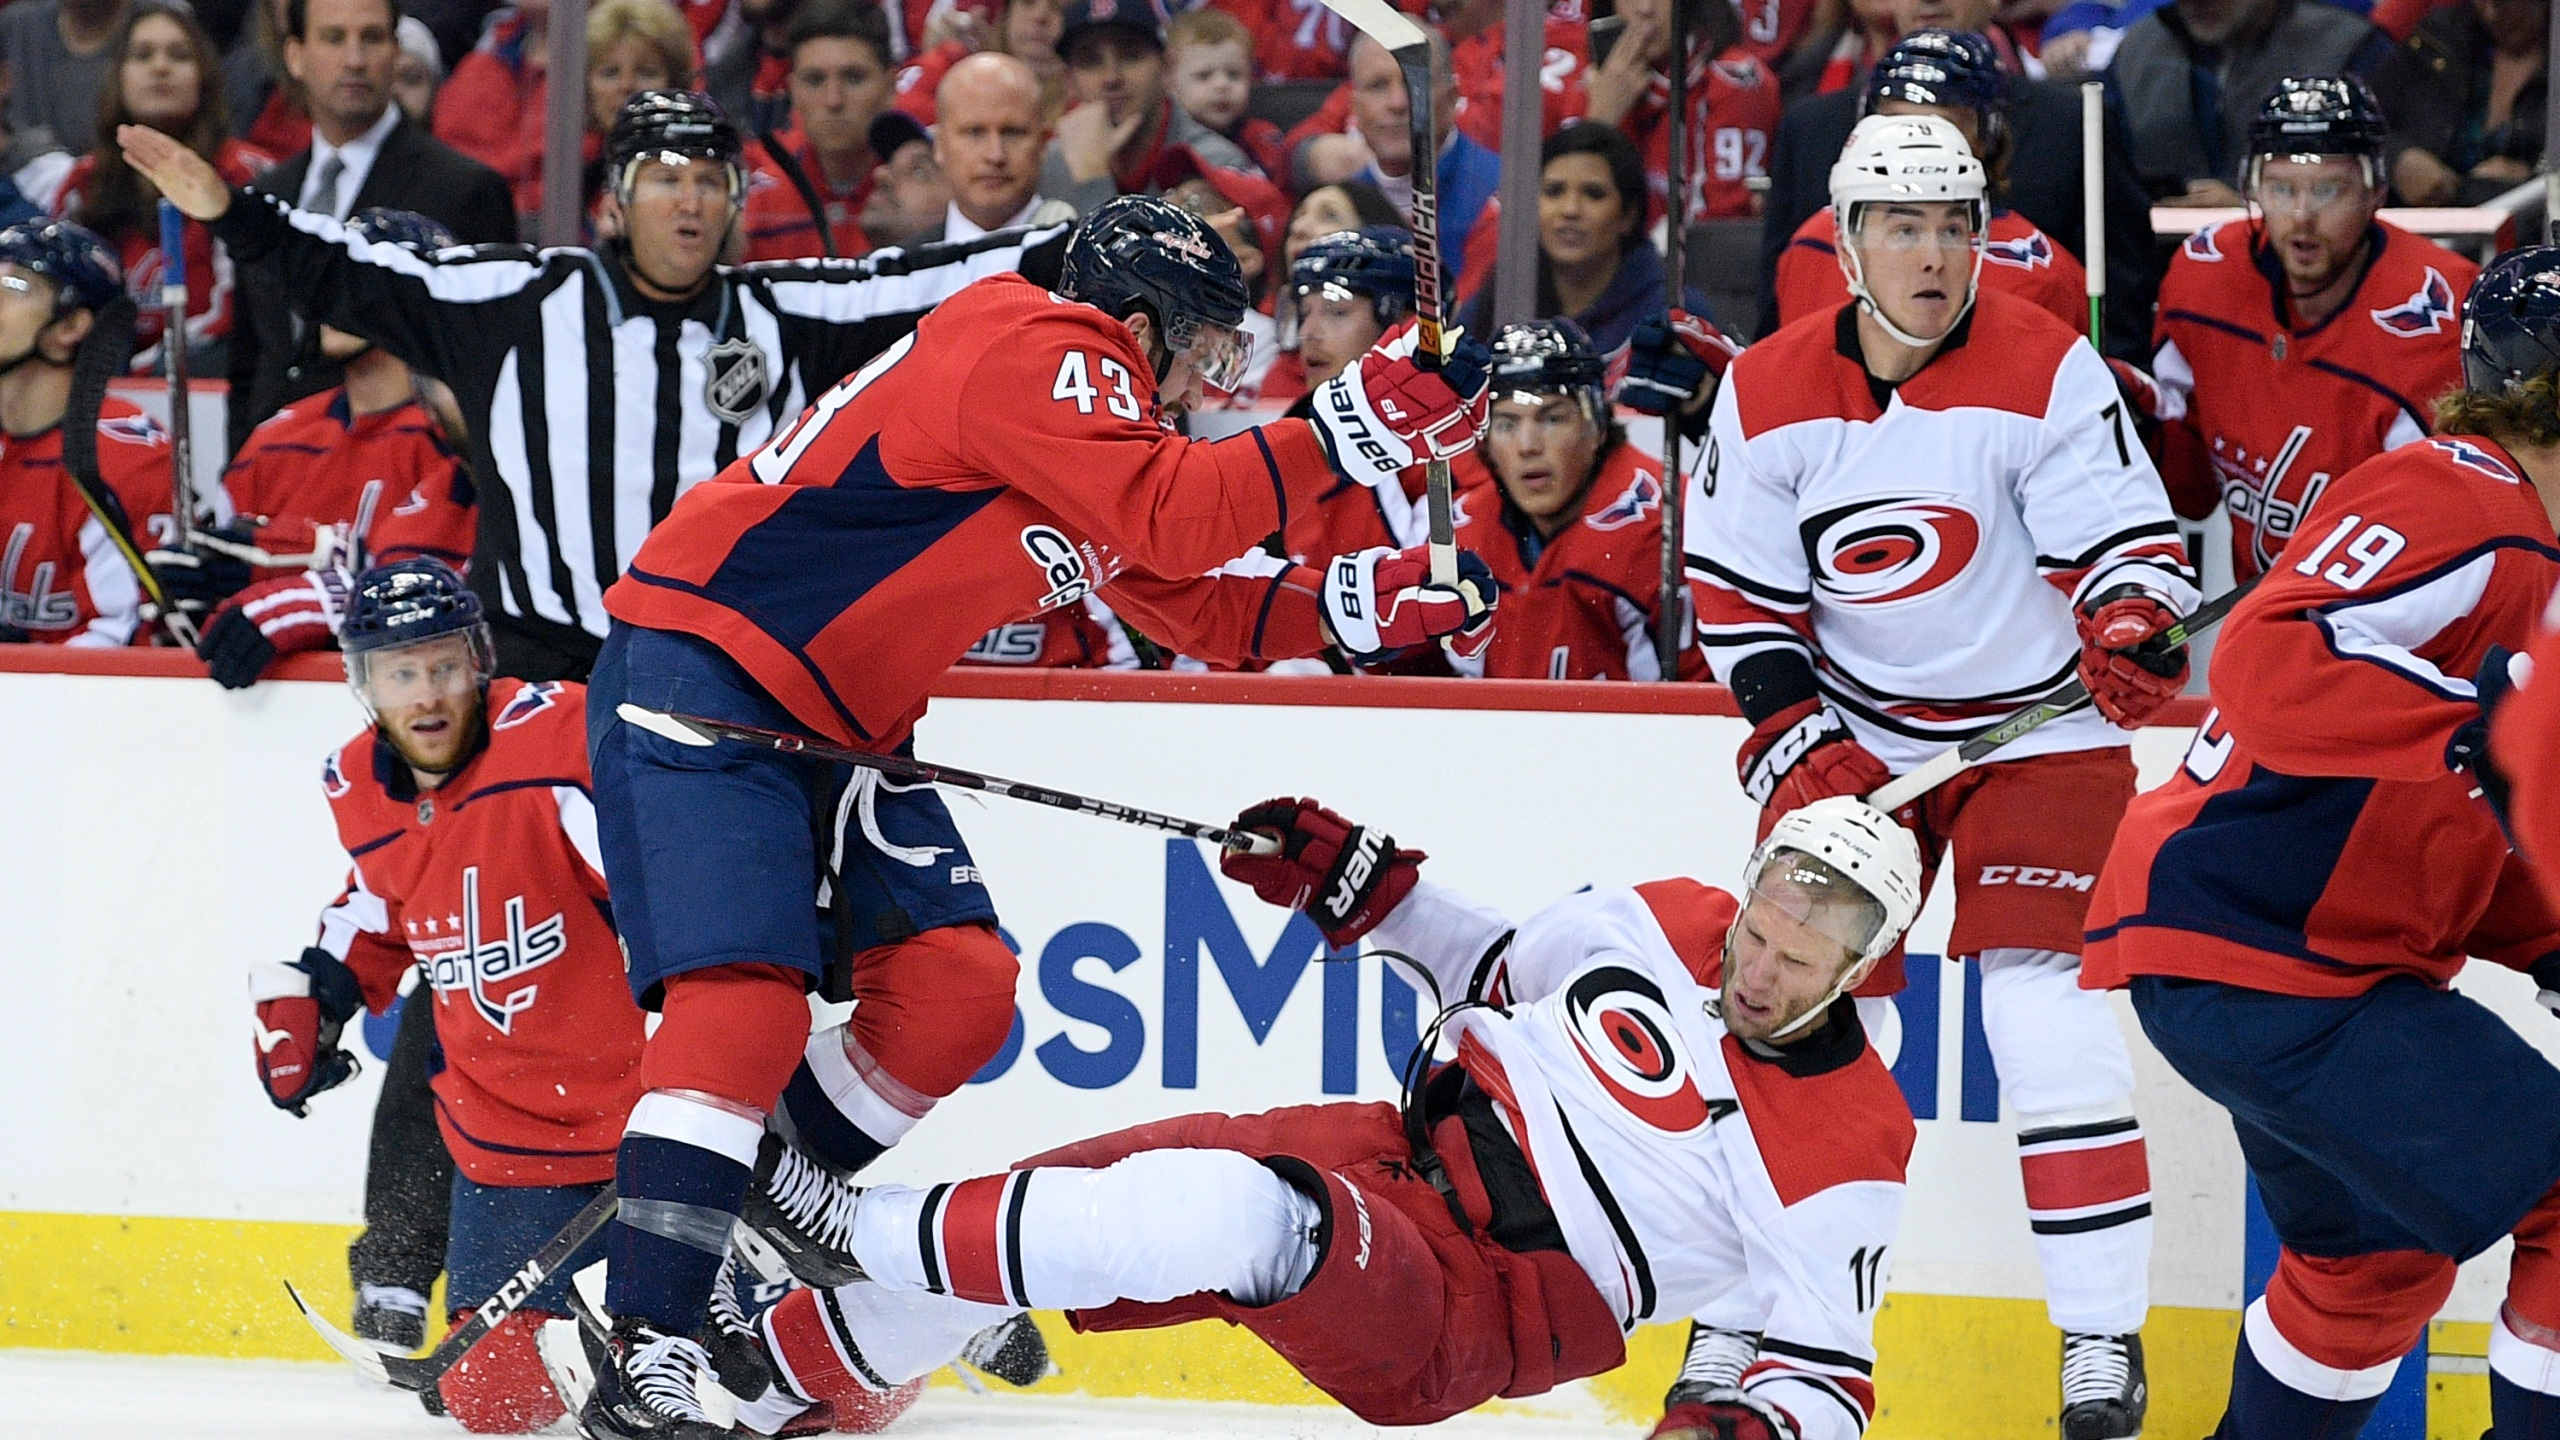 Hurricanes_Capitals_Hockey_15388-159532.jpg94619390